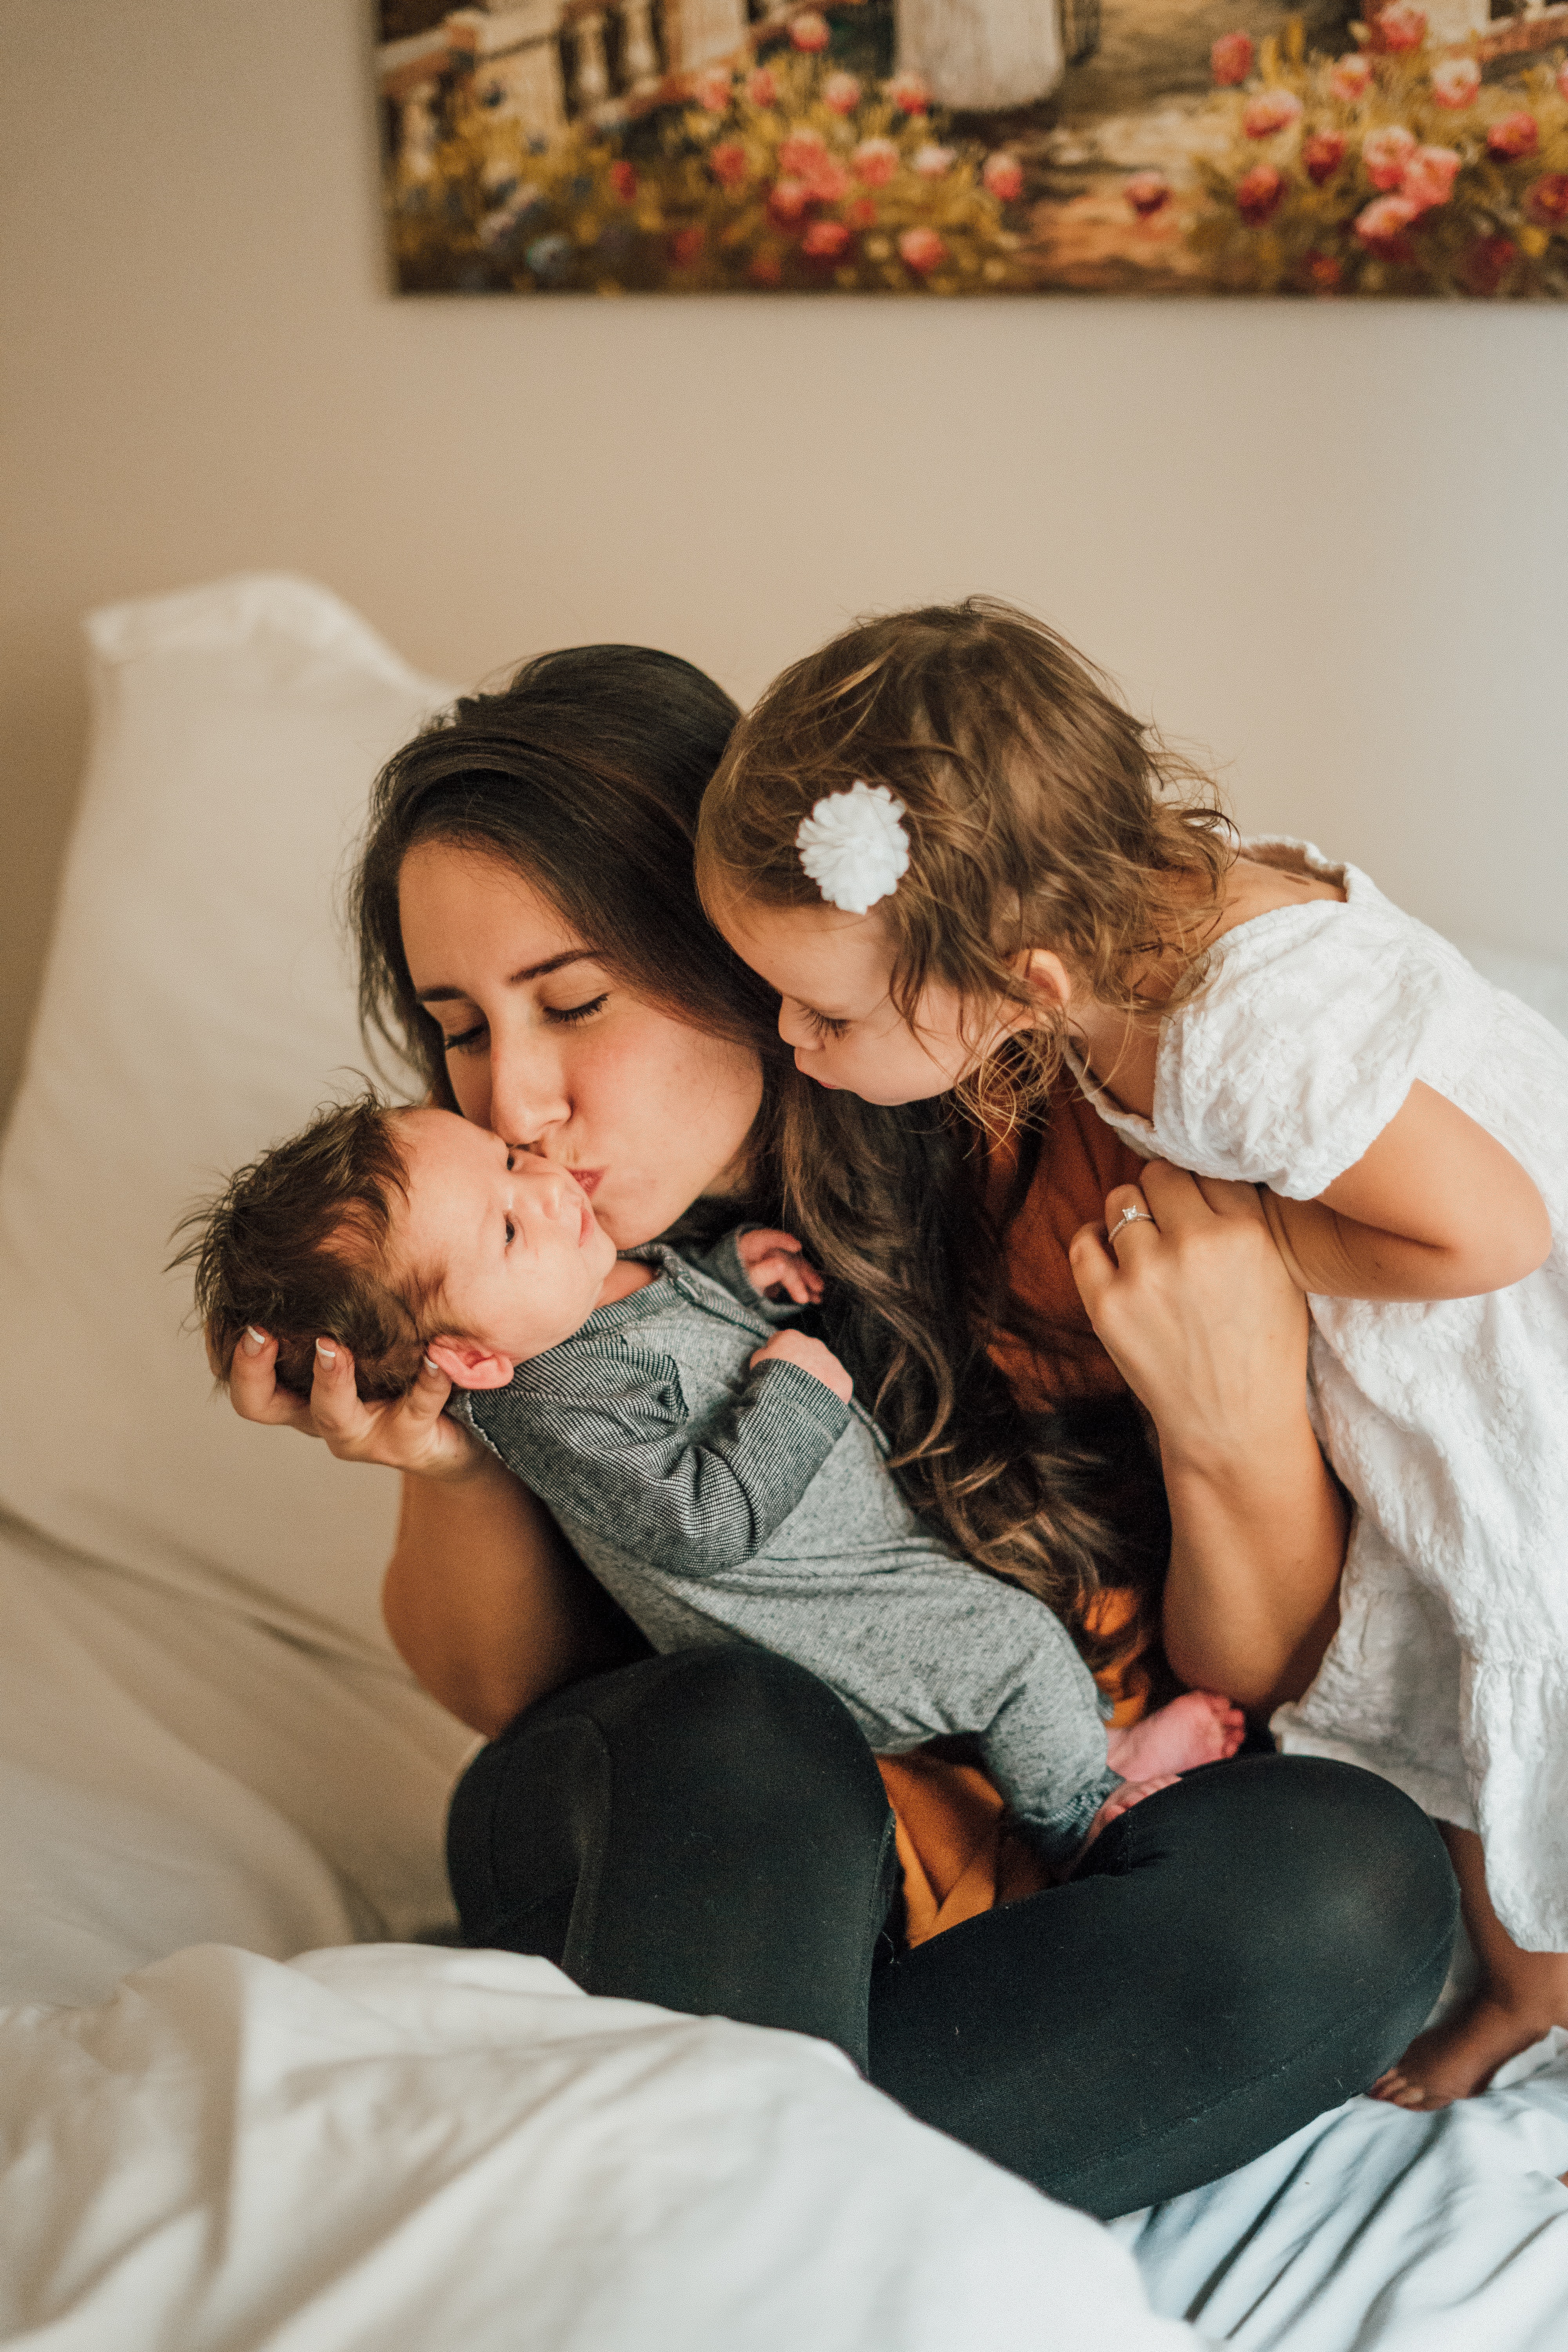 mom kissing baby while toddler looks over her shoulder and busyness with kids can be a reason why moms don't have social lives